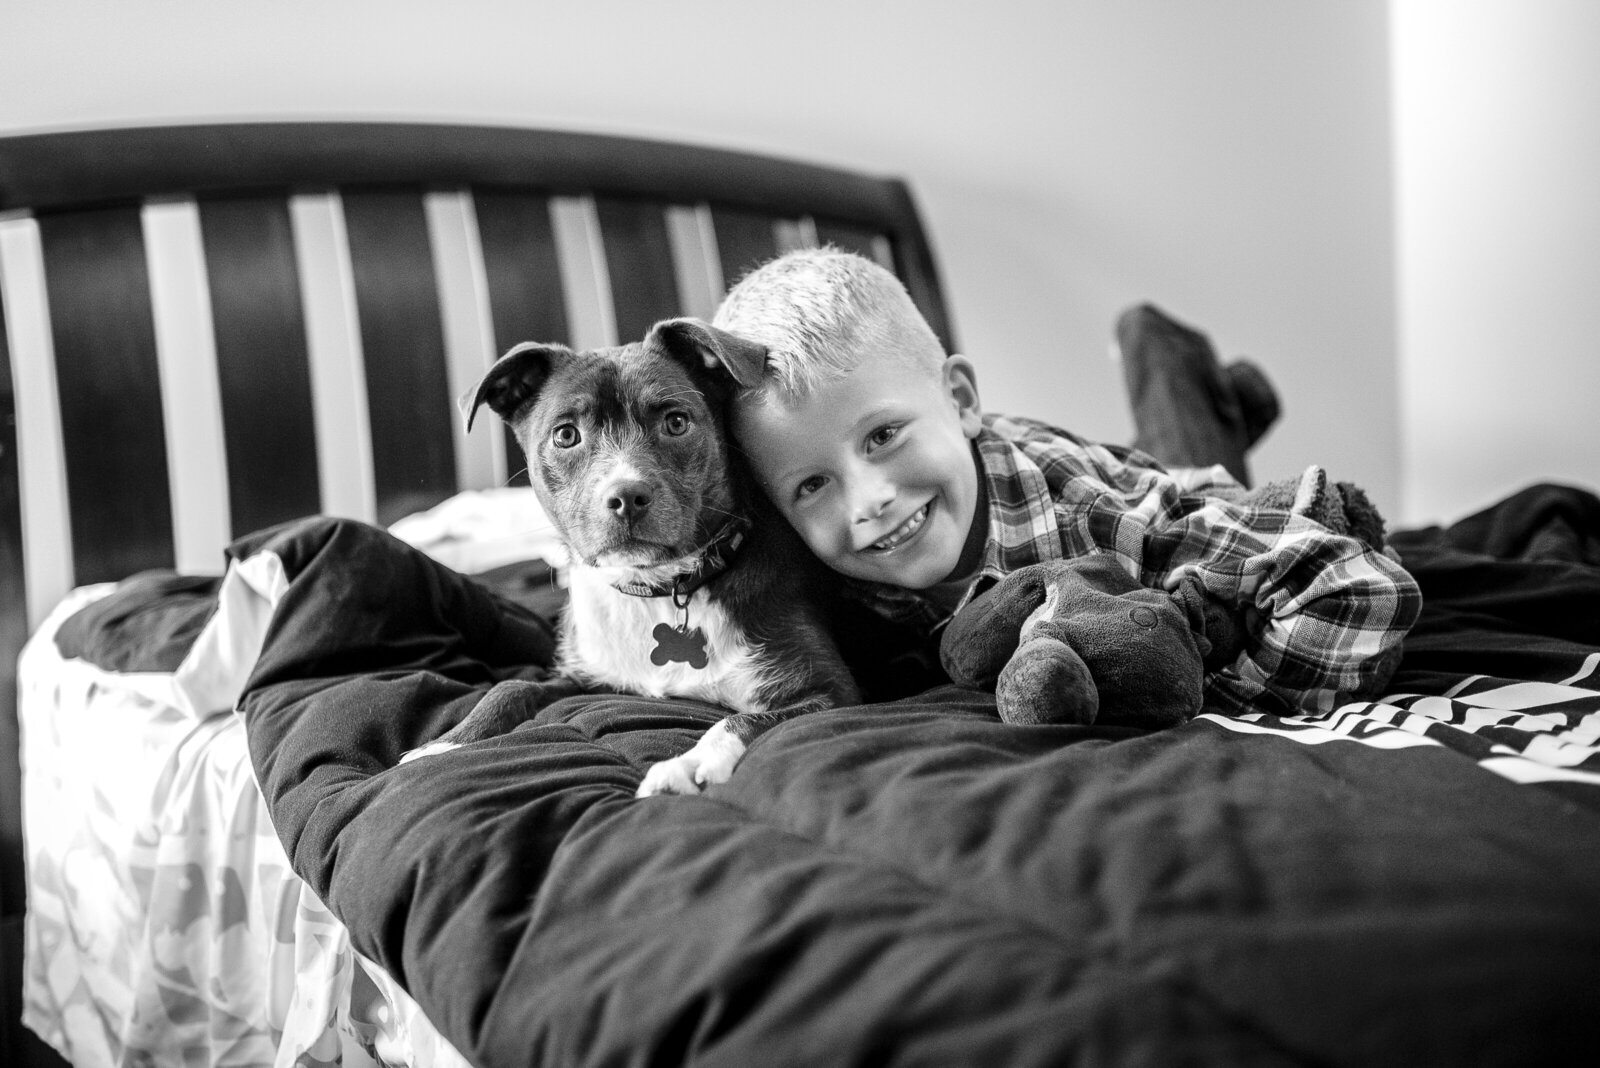 a boy poses with his dog in his bedroom